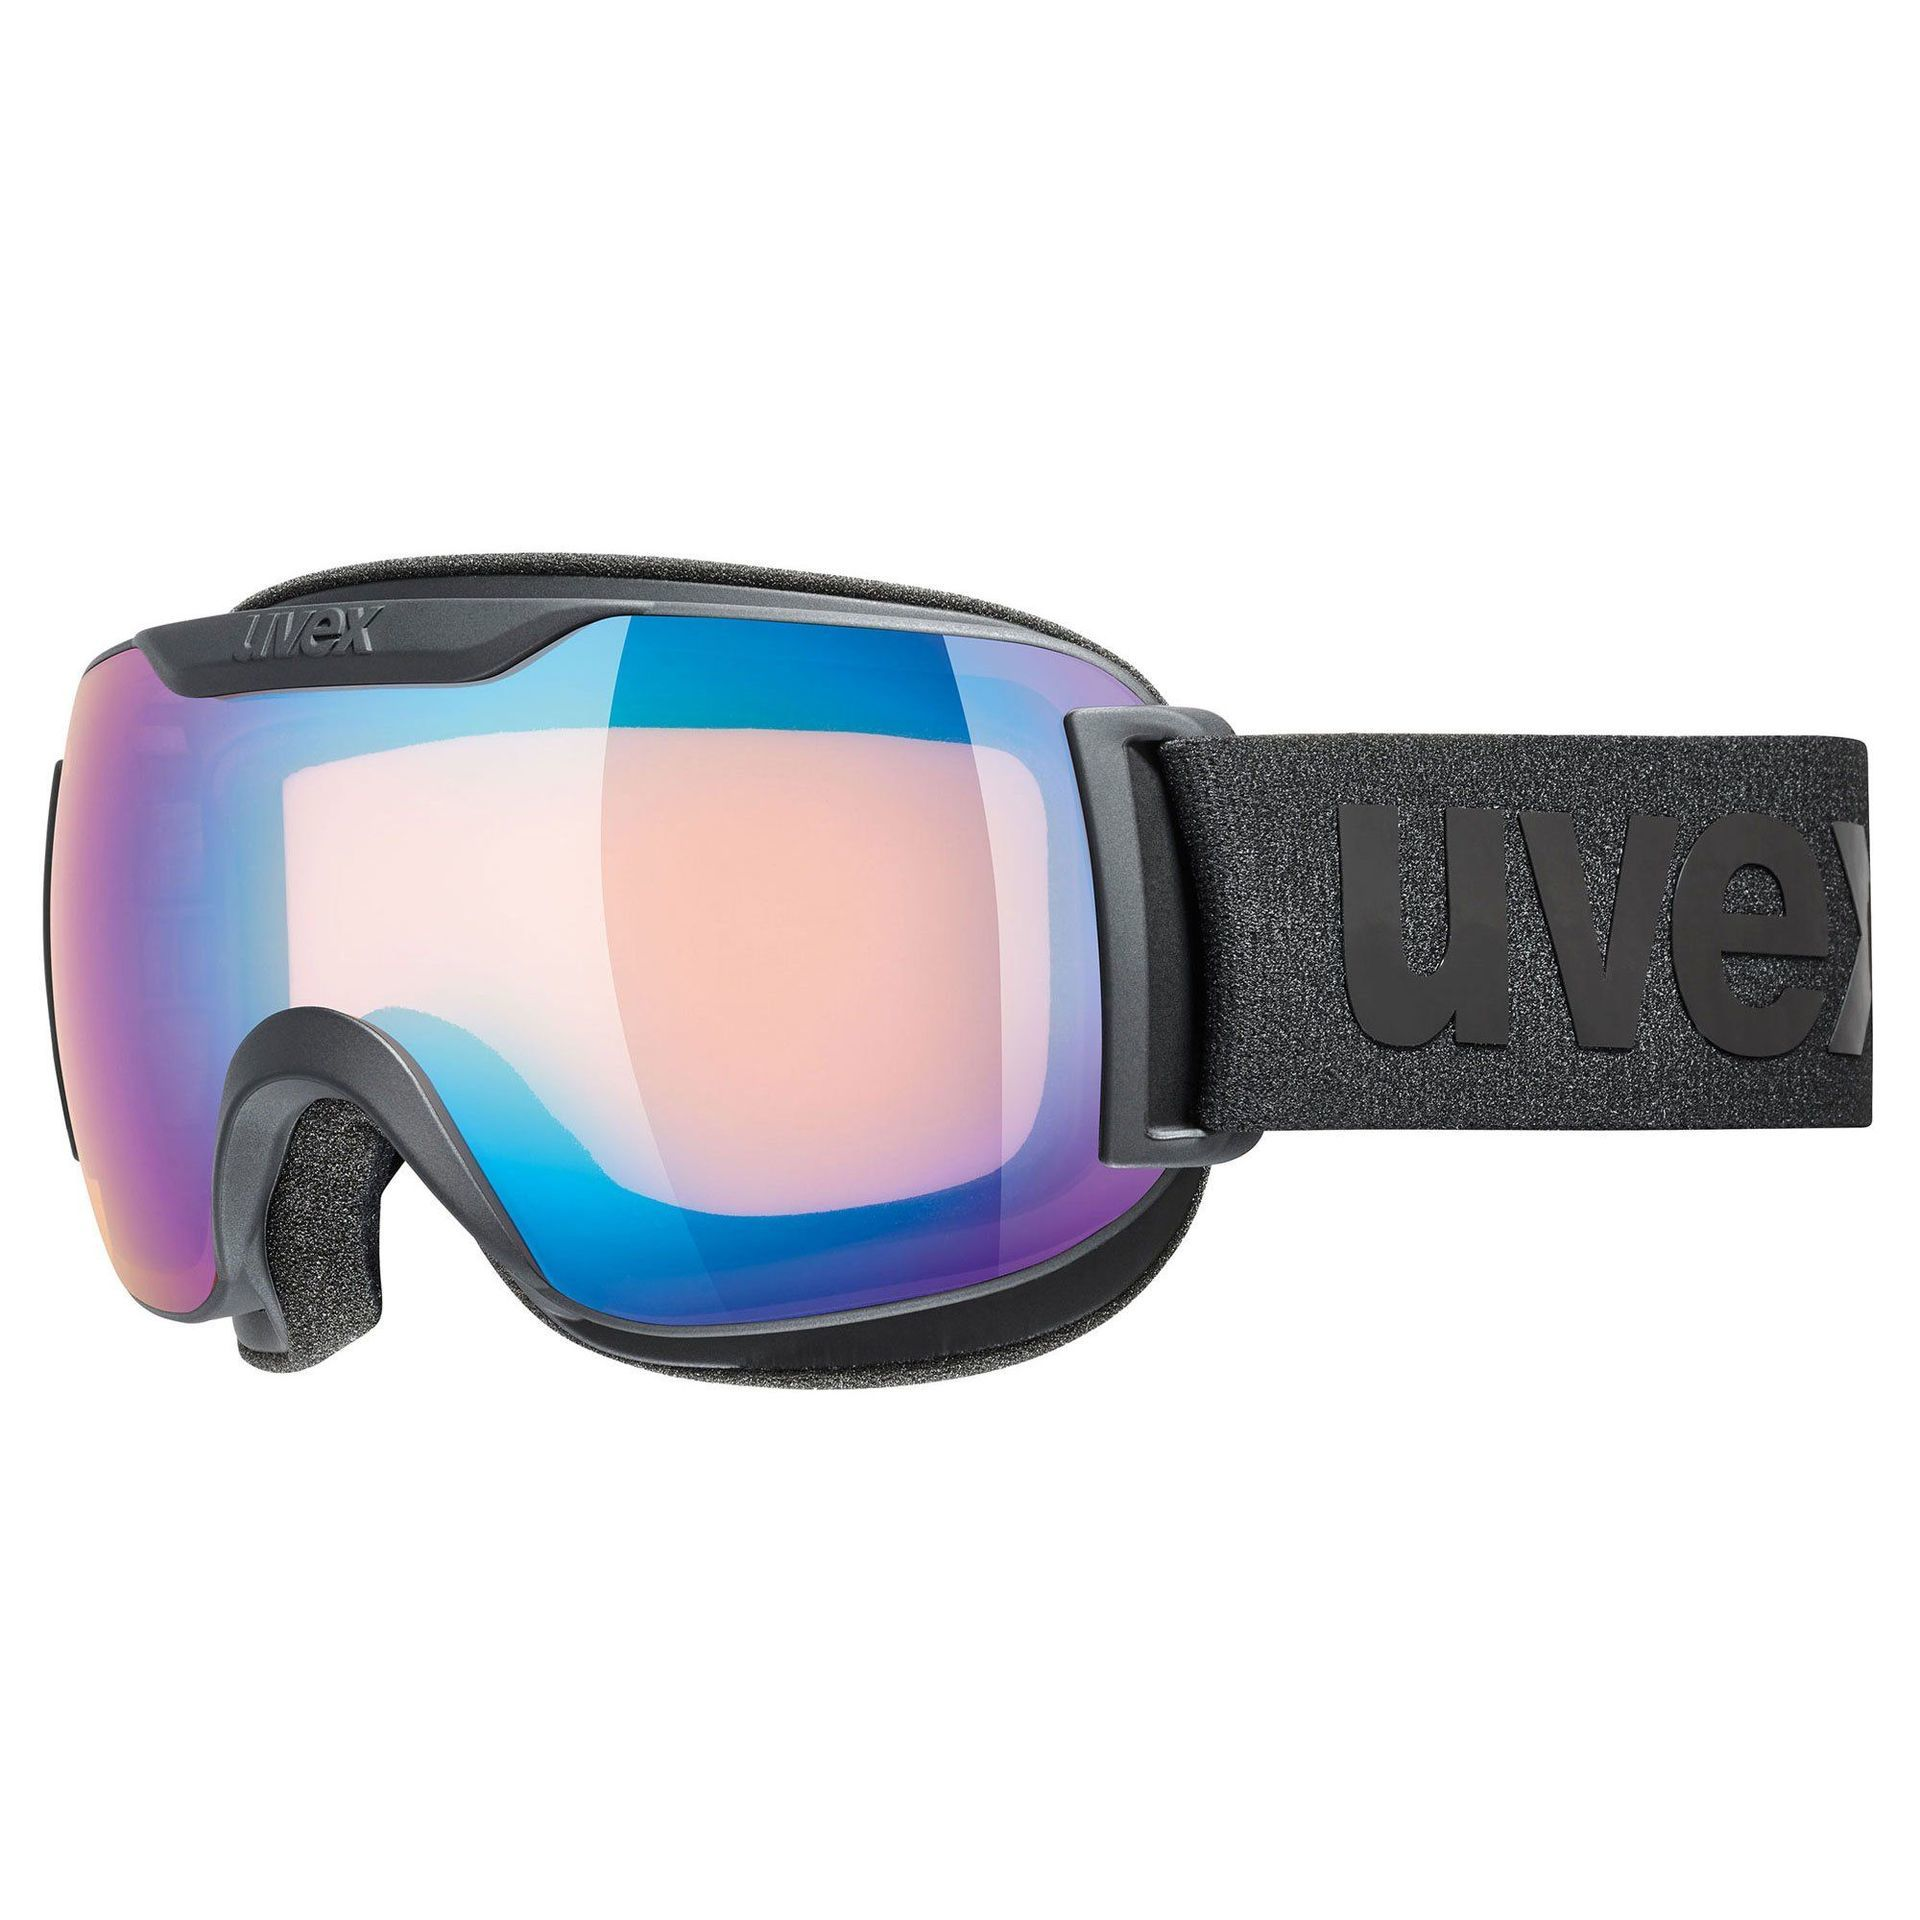 GOGLE UVEX DOWNHILL 2000 S CV BLACK MAT|MIRROR BLUE COLORVISION YELLOW 55|0|447|2130